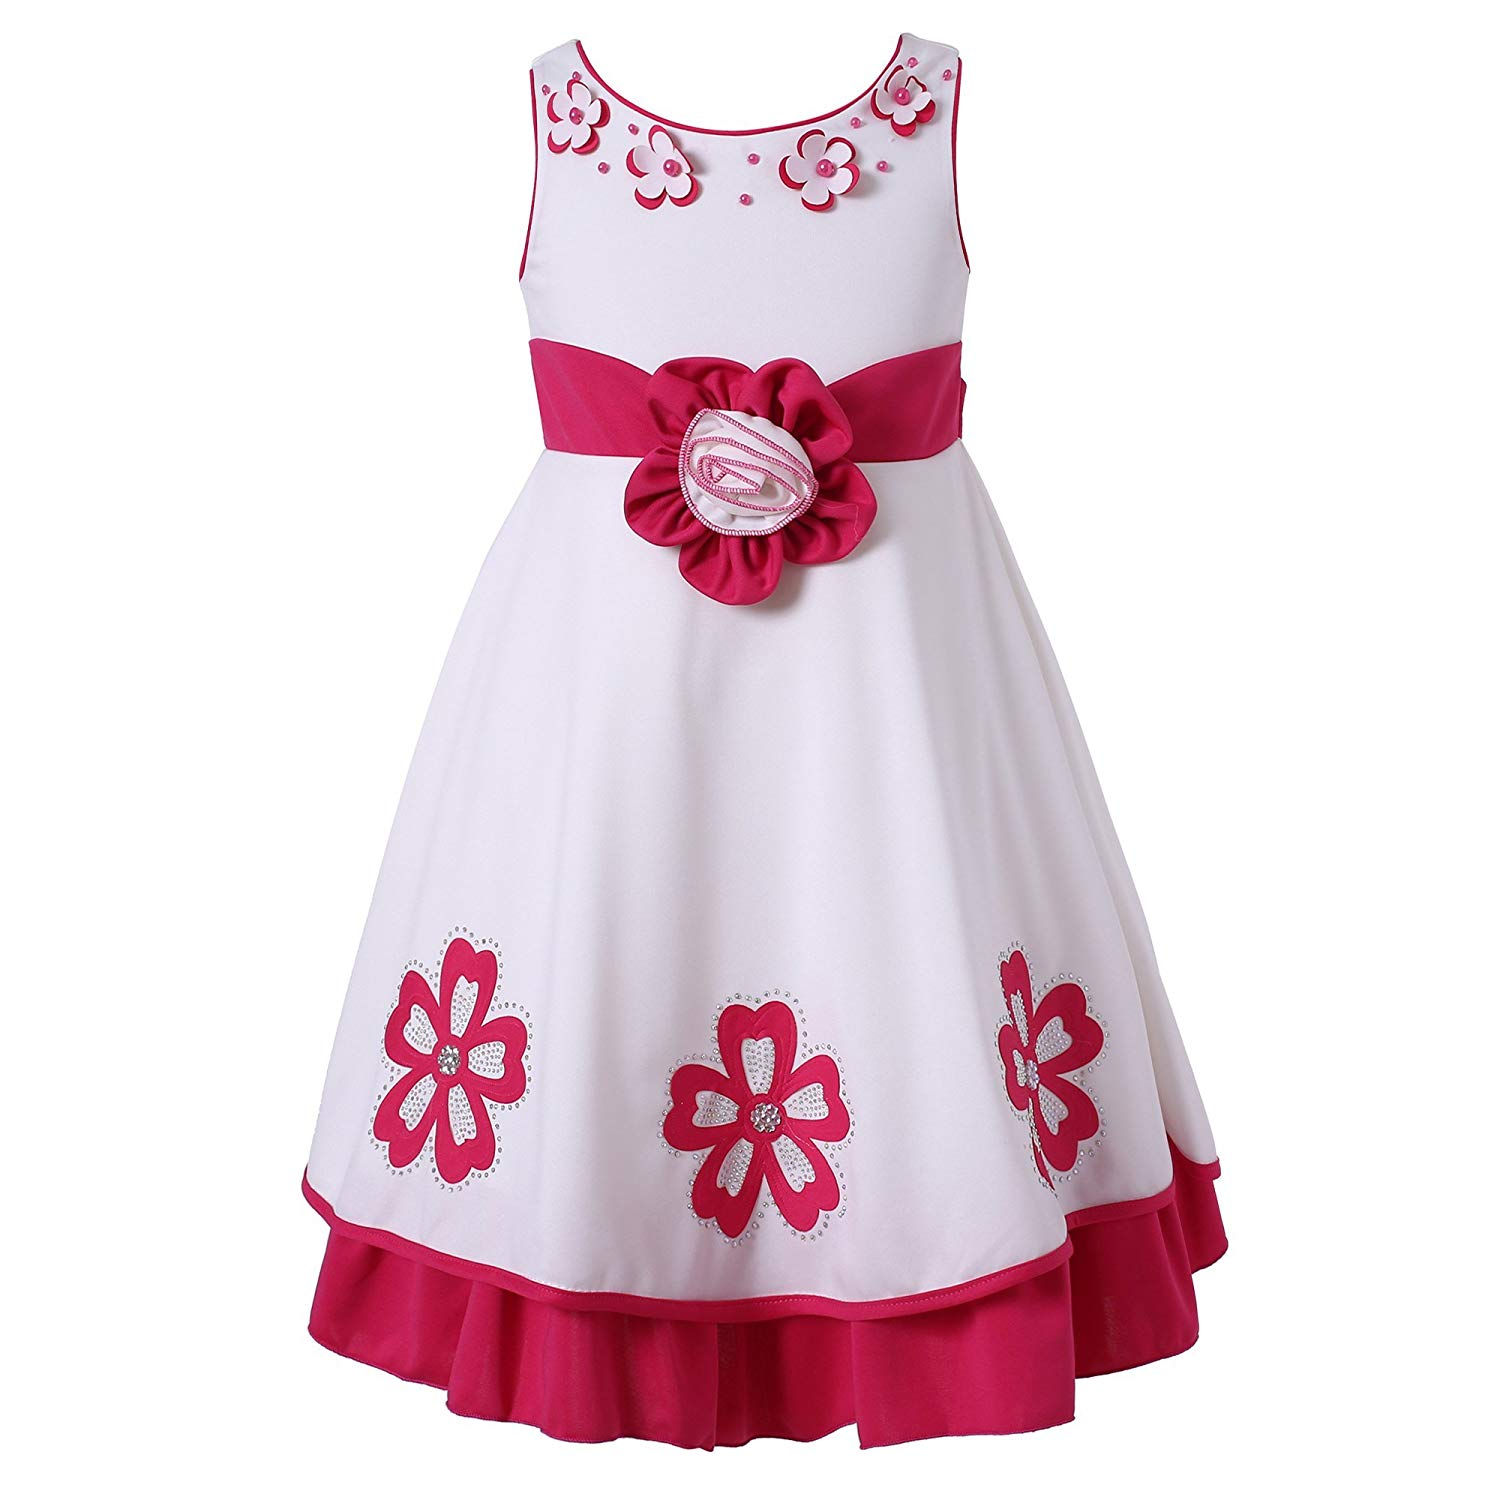 Richie House Kids Girls Party Princess Fancy Dress Up Costumes Flower Age 3-9